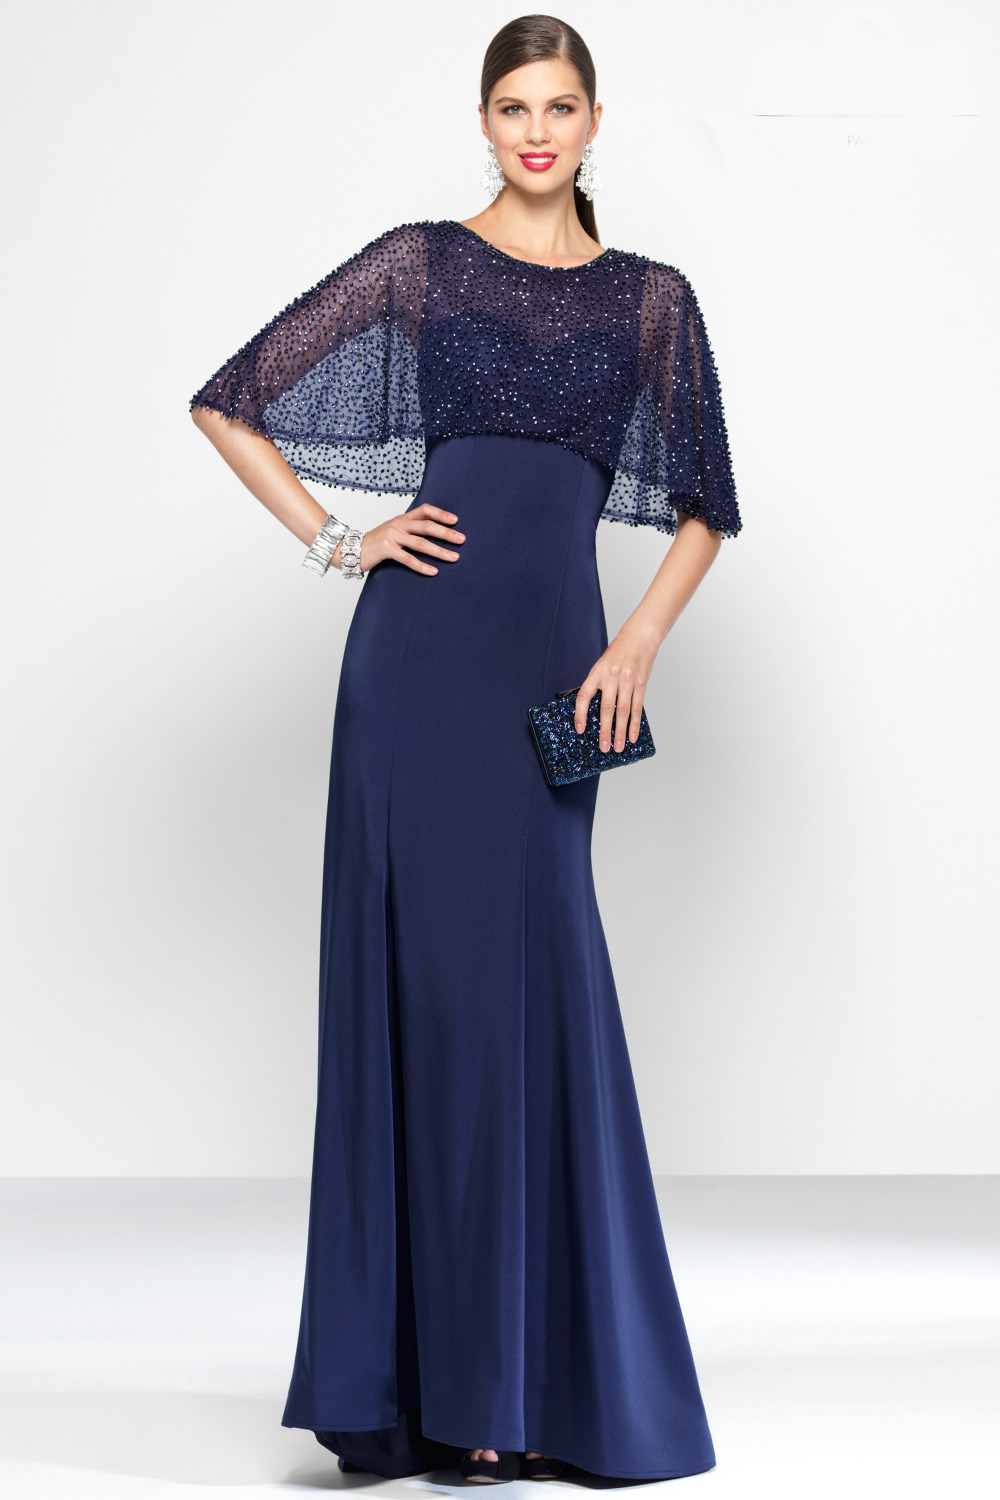 addcaea27 Chic Stylish O Neck Half Sleeve Closed Back Satin Long Formal Dress for  Evening Party with Beading Tunic Robe De Soiree Longue-in Evening Dresses  from ...